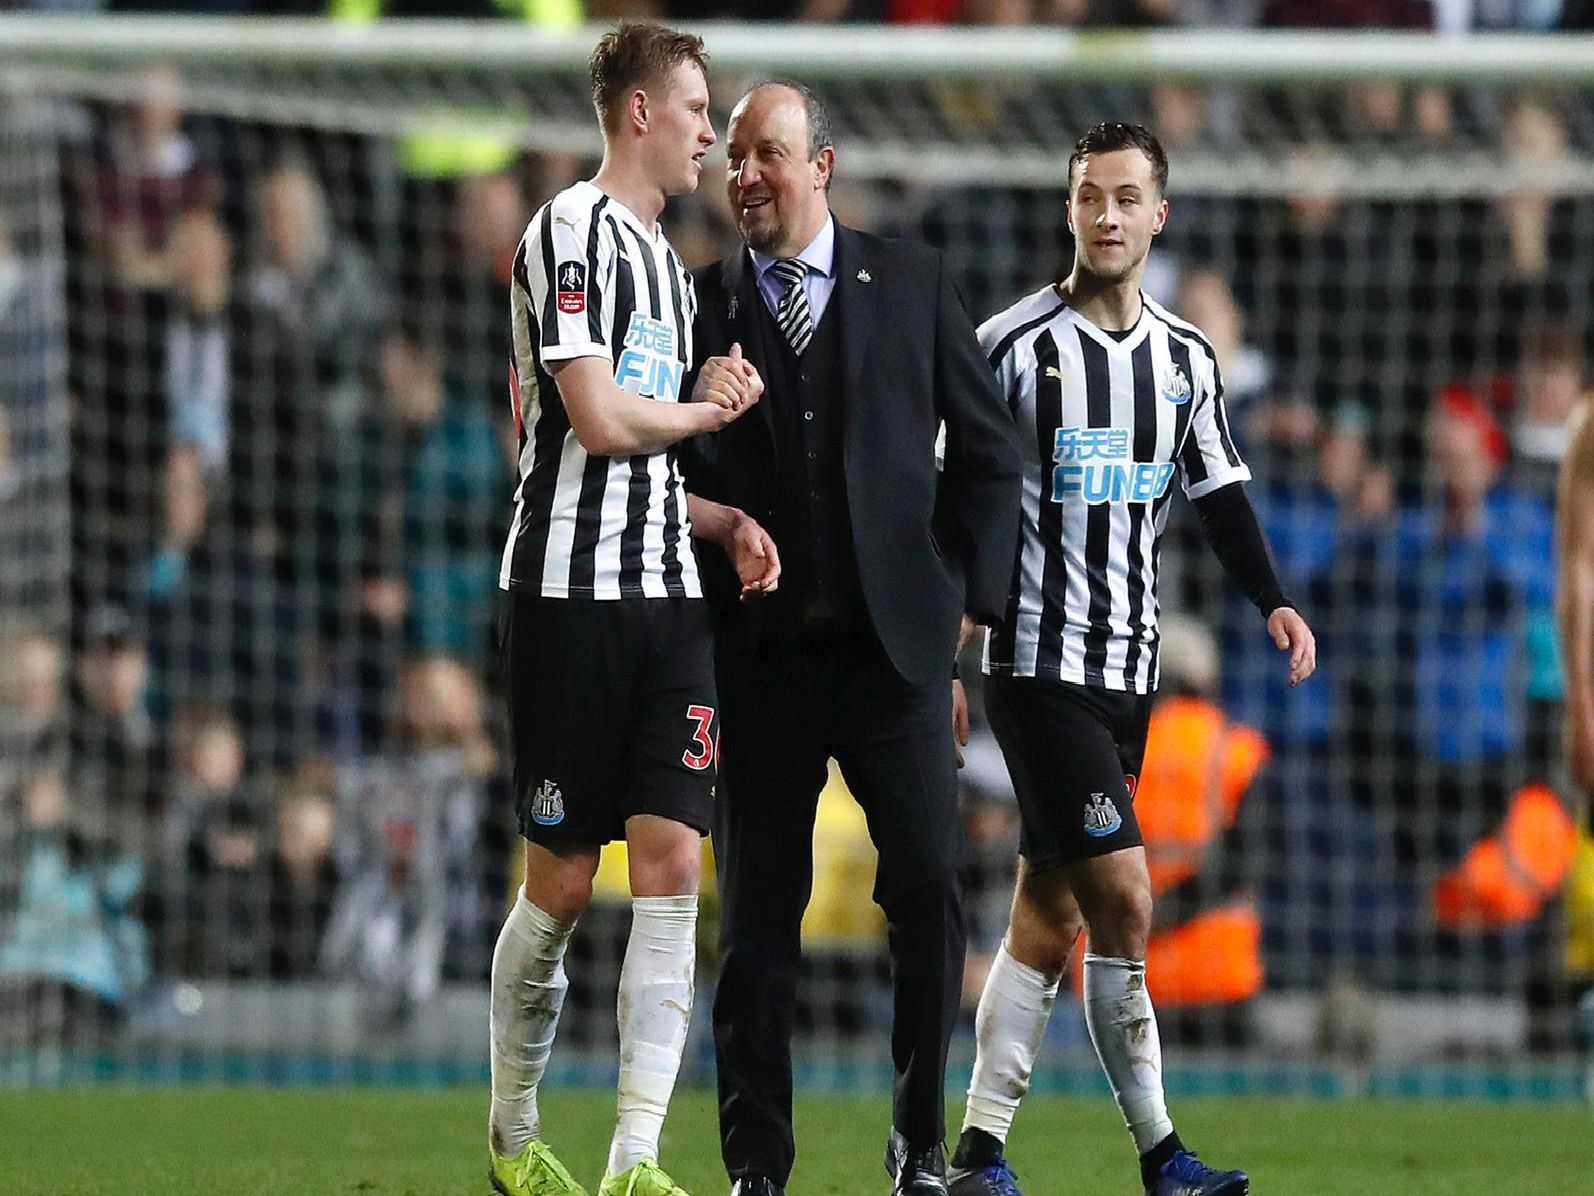 Sean Longstaff stood out for Rafa Benitez's side - but who else did?